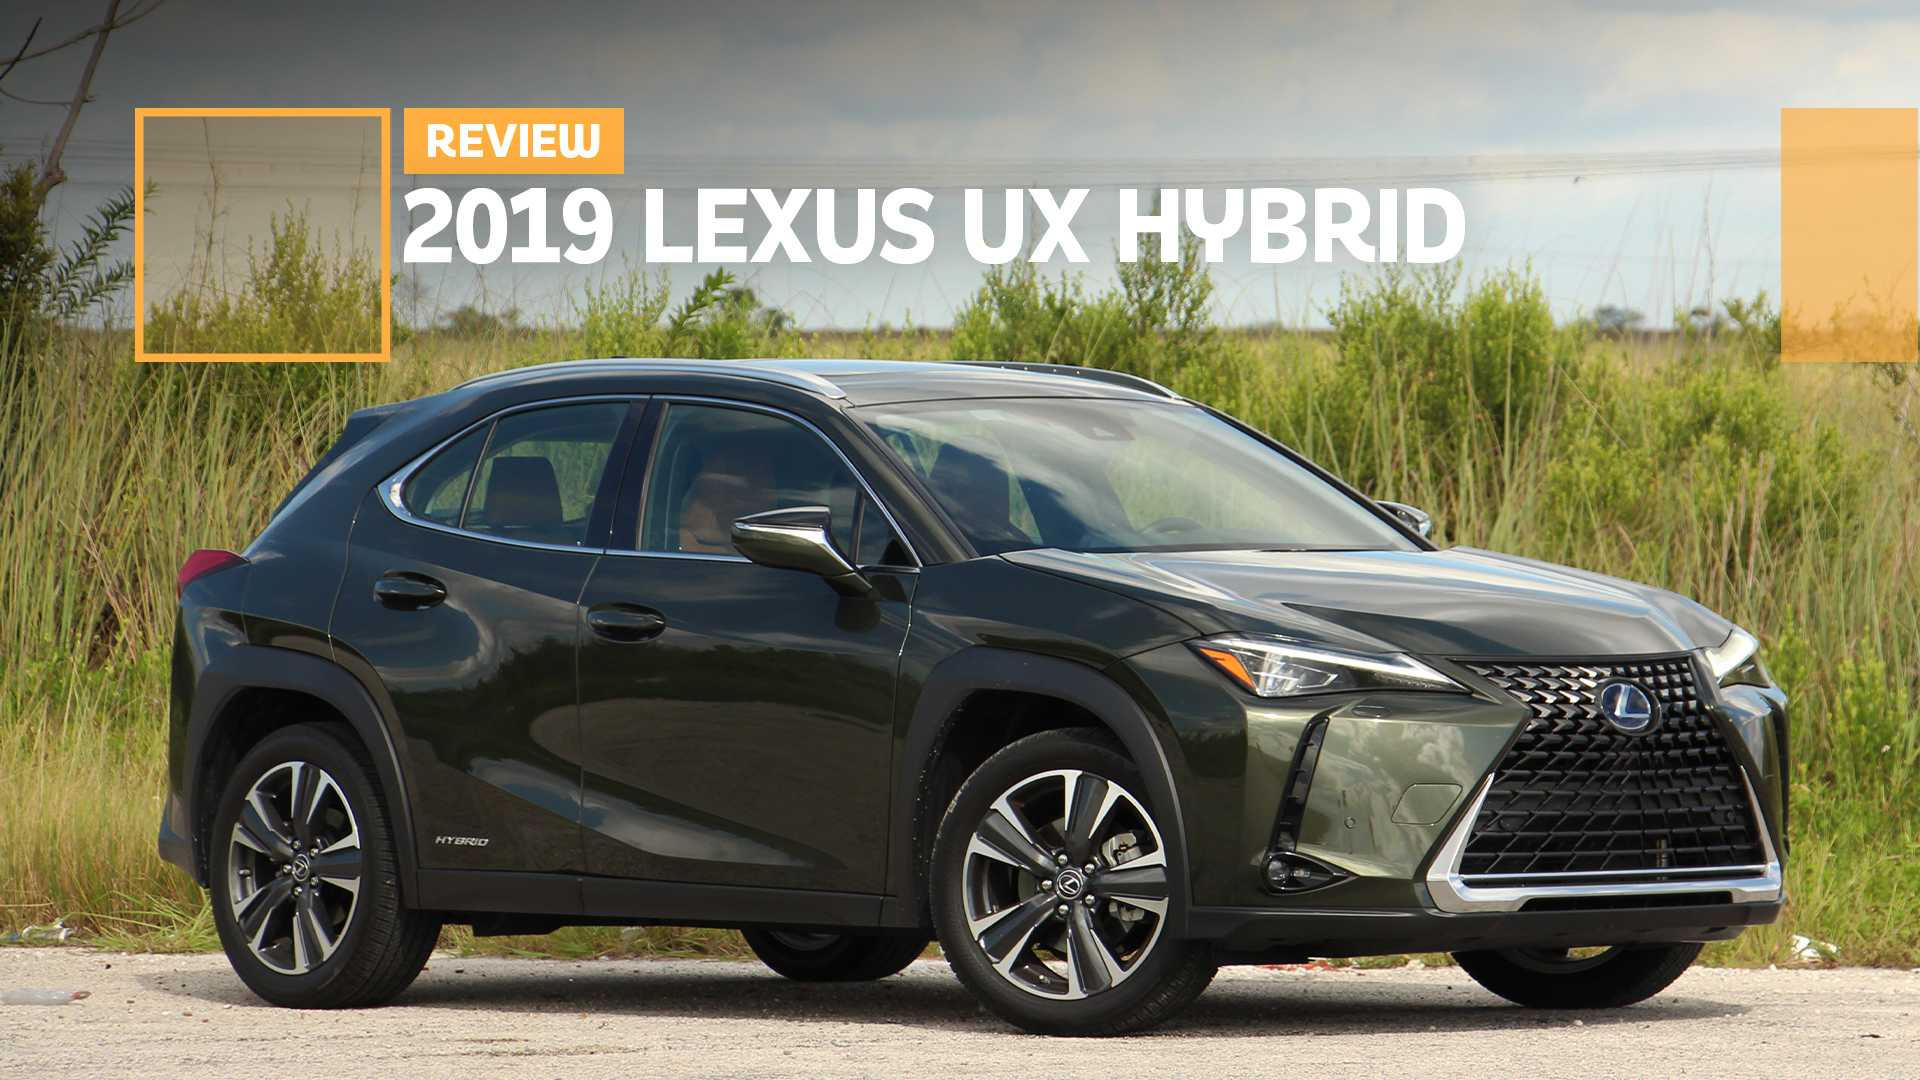 2019 Lexus Ux 250h Review Efficient Affordable And Downright Charming